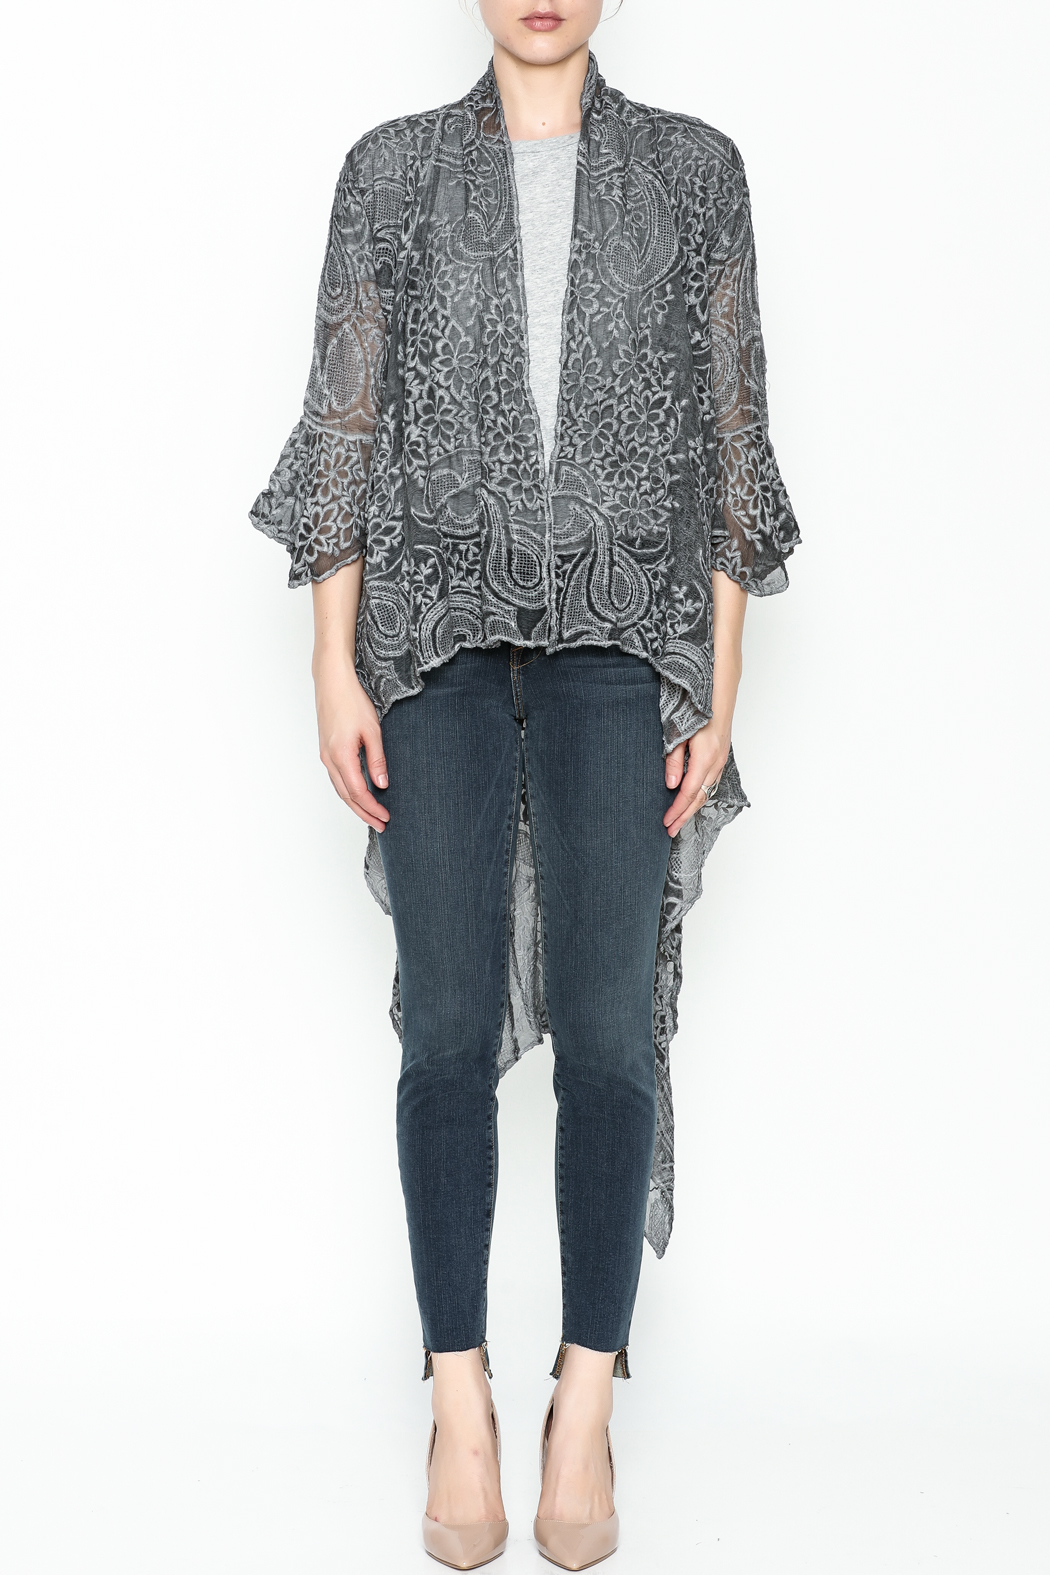 Gretty Zuegar Embroidered Silk Cardigan - Front Full Image